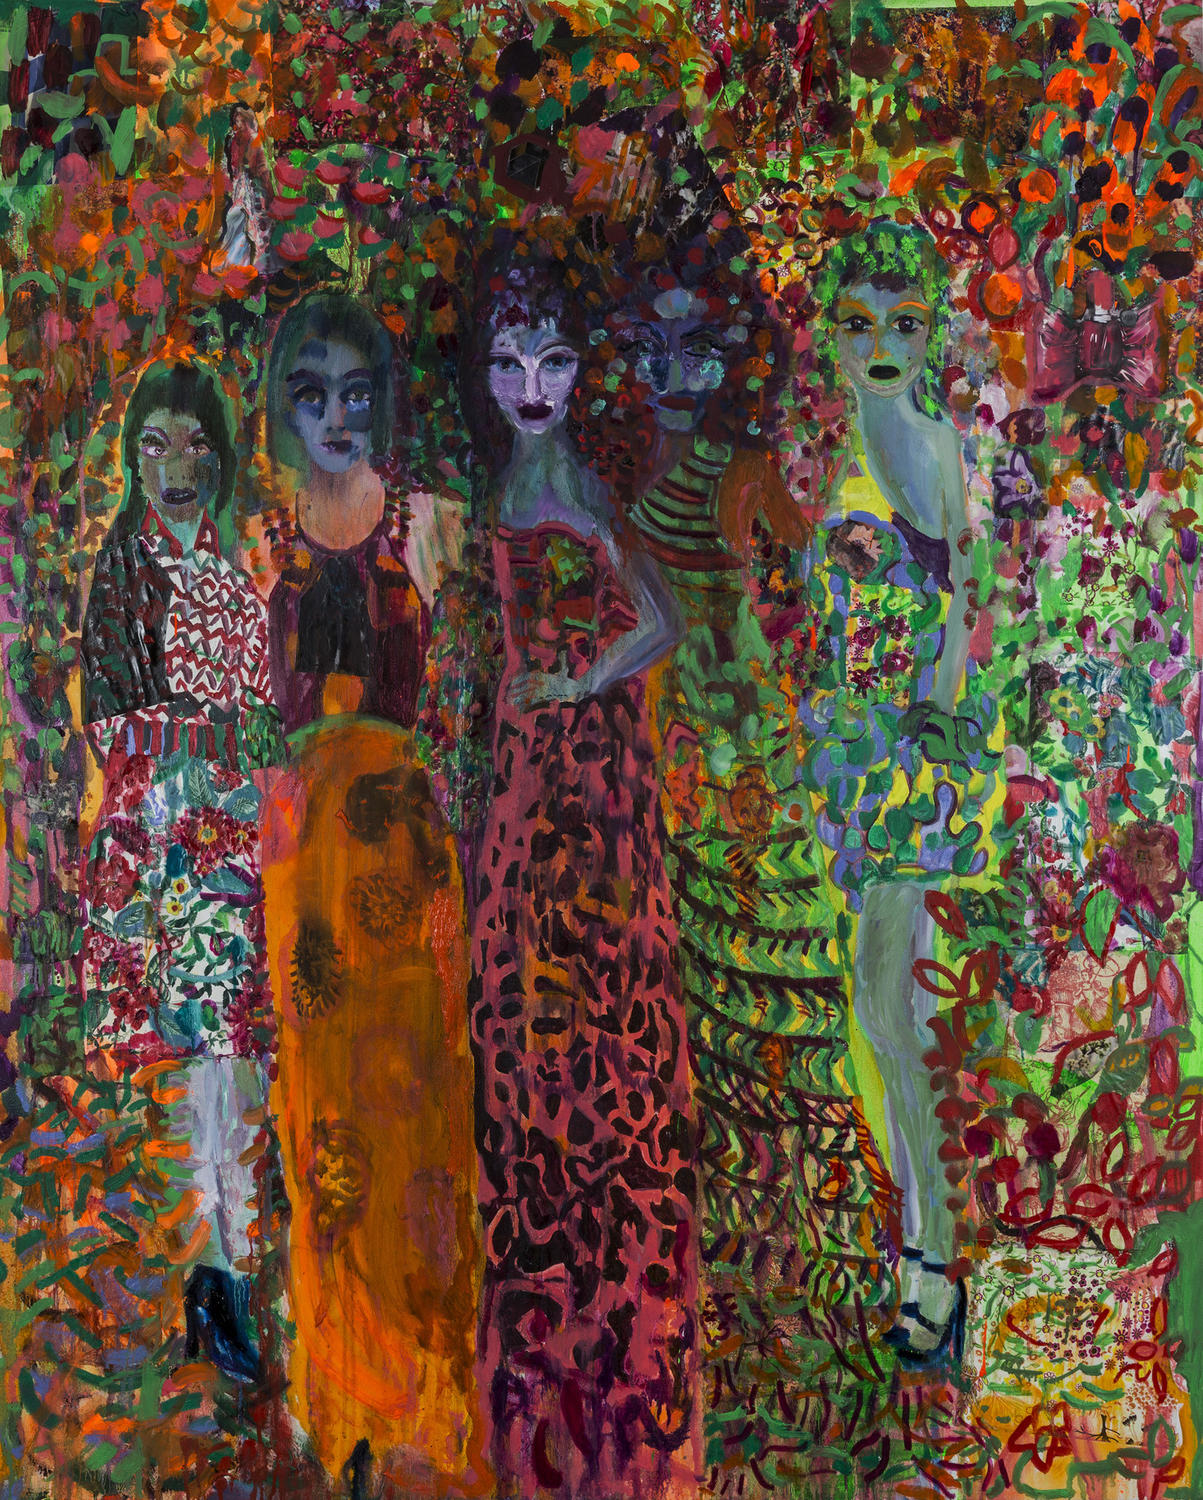 Vanessa Mitter, The Beautiful People, oil, acrylic and collage on canvas, 150cm x 120cm